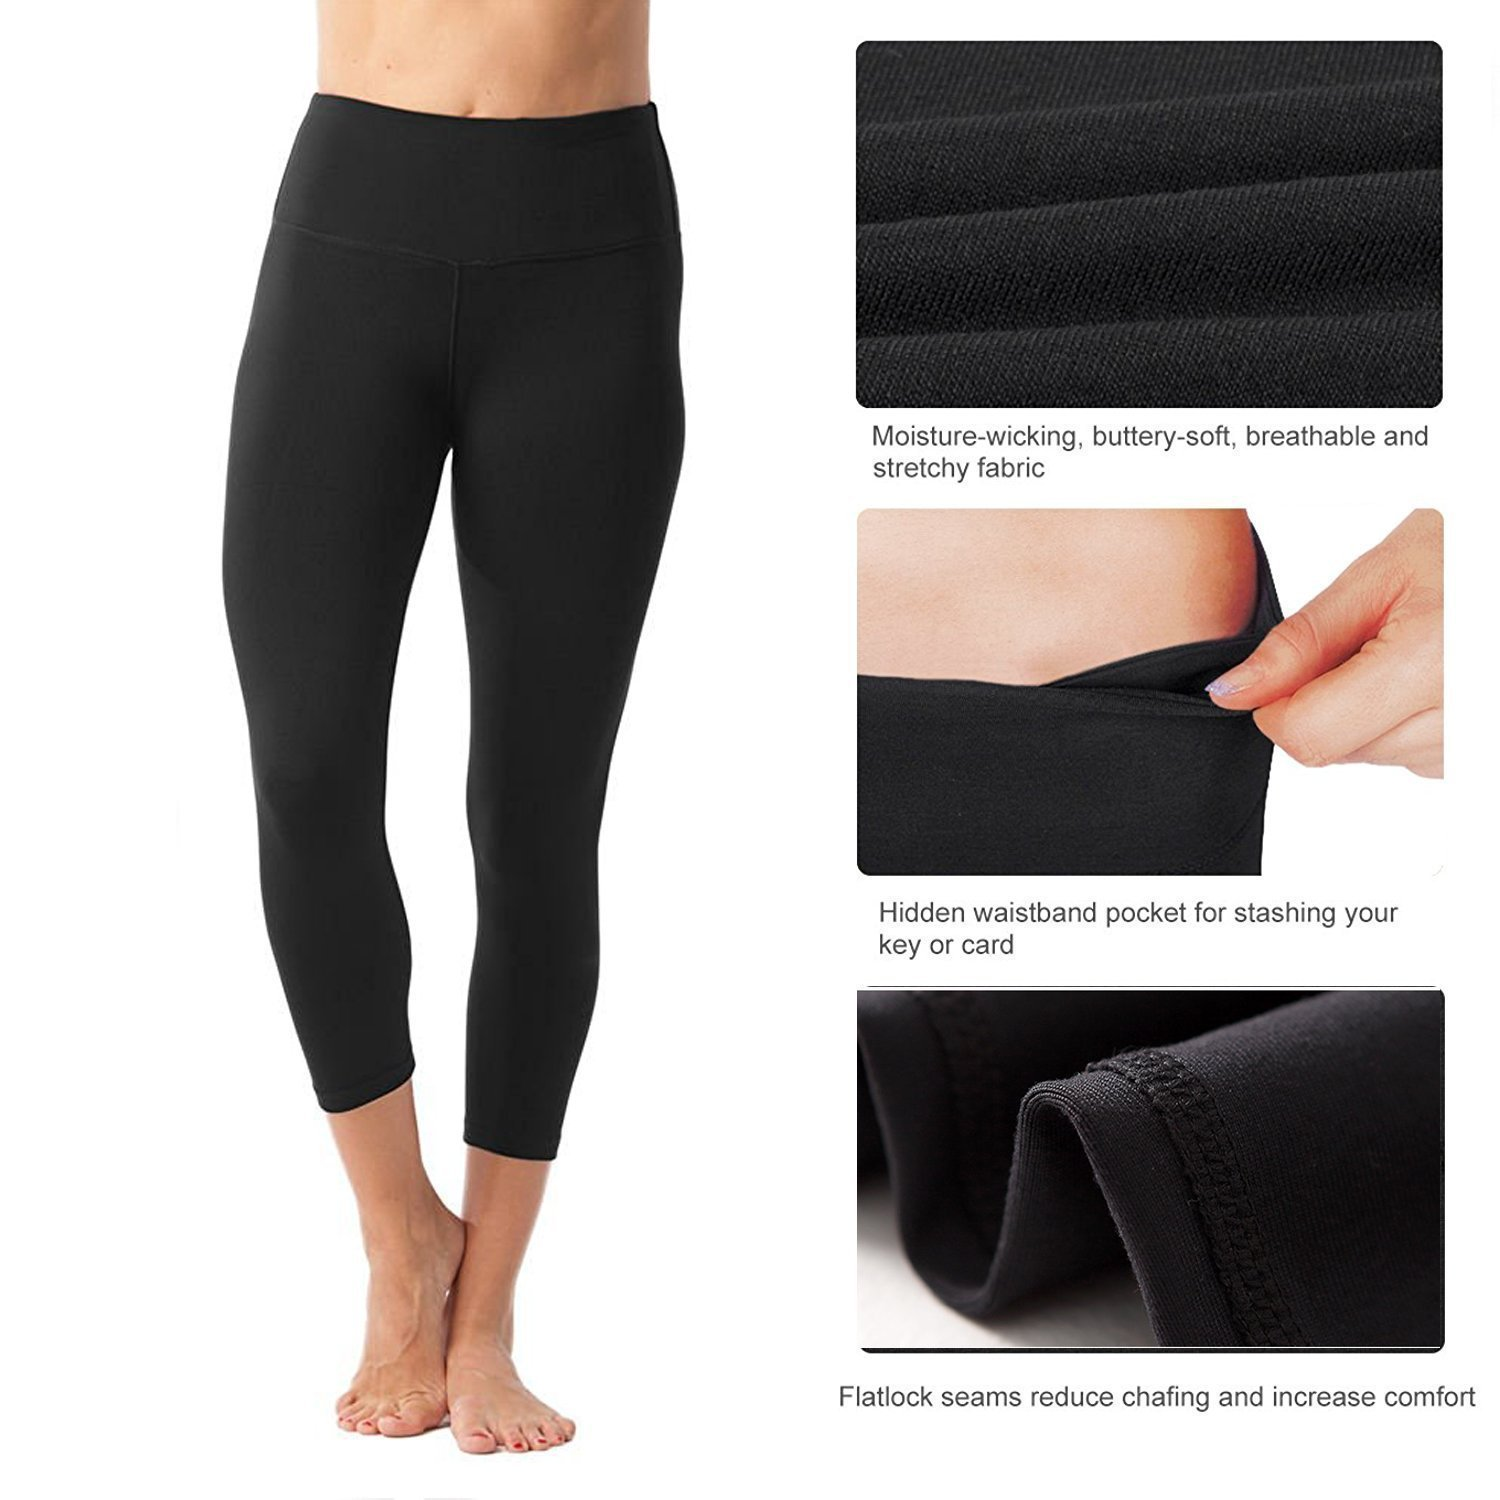 dd58ba4b98ddc1 FIRM ABS Women's Black Tummy Control with Figure Firming High Waist  Compression Leggings: Amazon.co.uk: Clothing